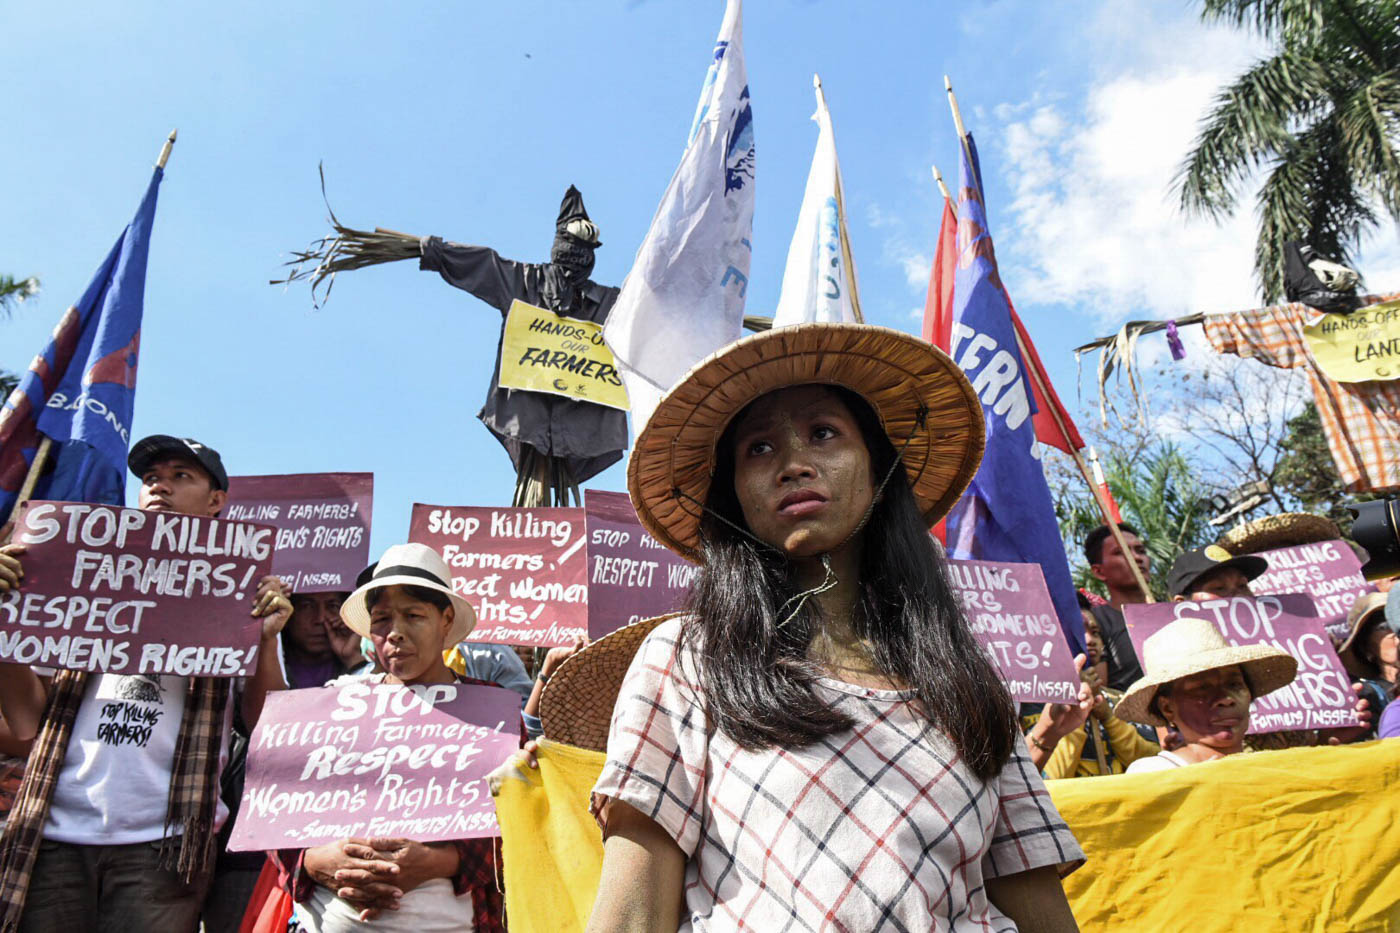 Various groups gather at Liwasang Bonifacio in Manila to commemorate International Women's Day. Photo by Alecs Ongcal/Rappler